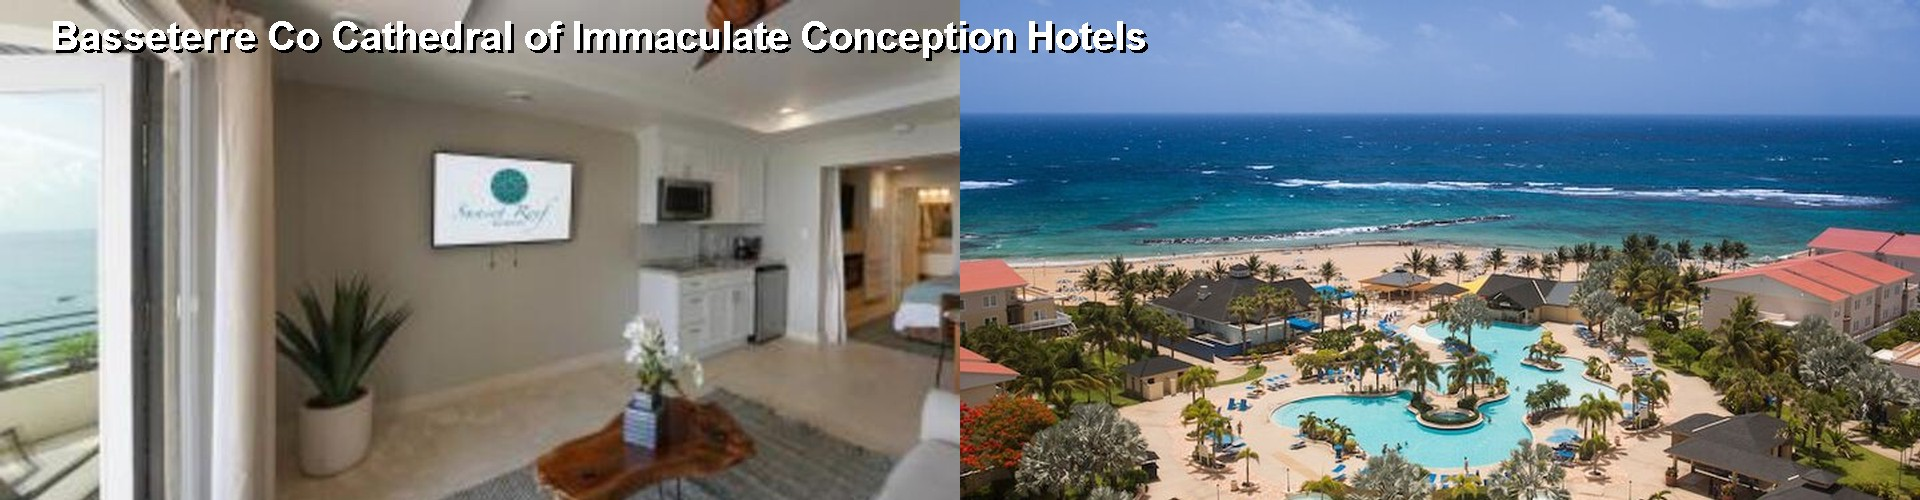 5 Best Hotels near Basseterre Co Cathedral of Immaculate Conception